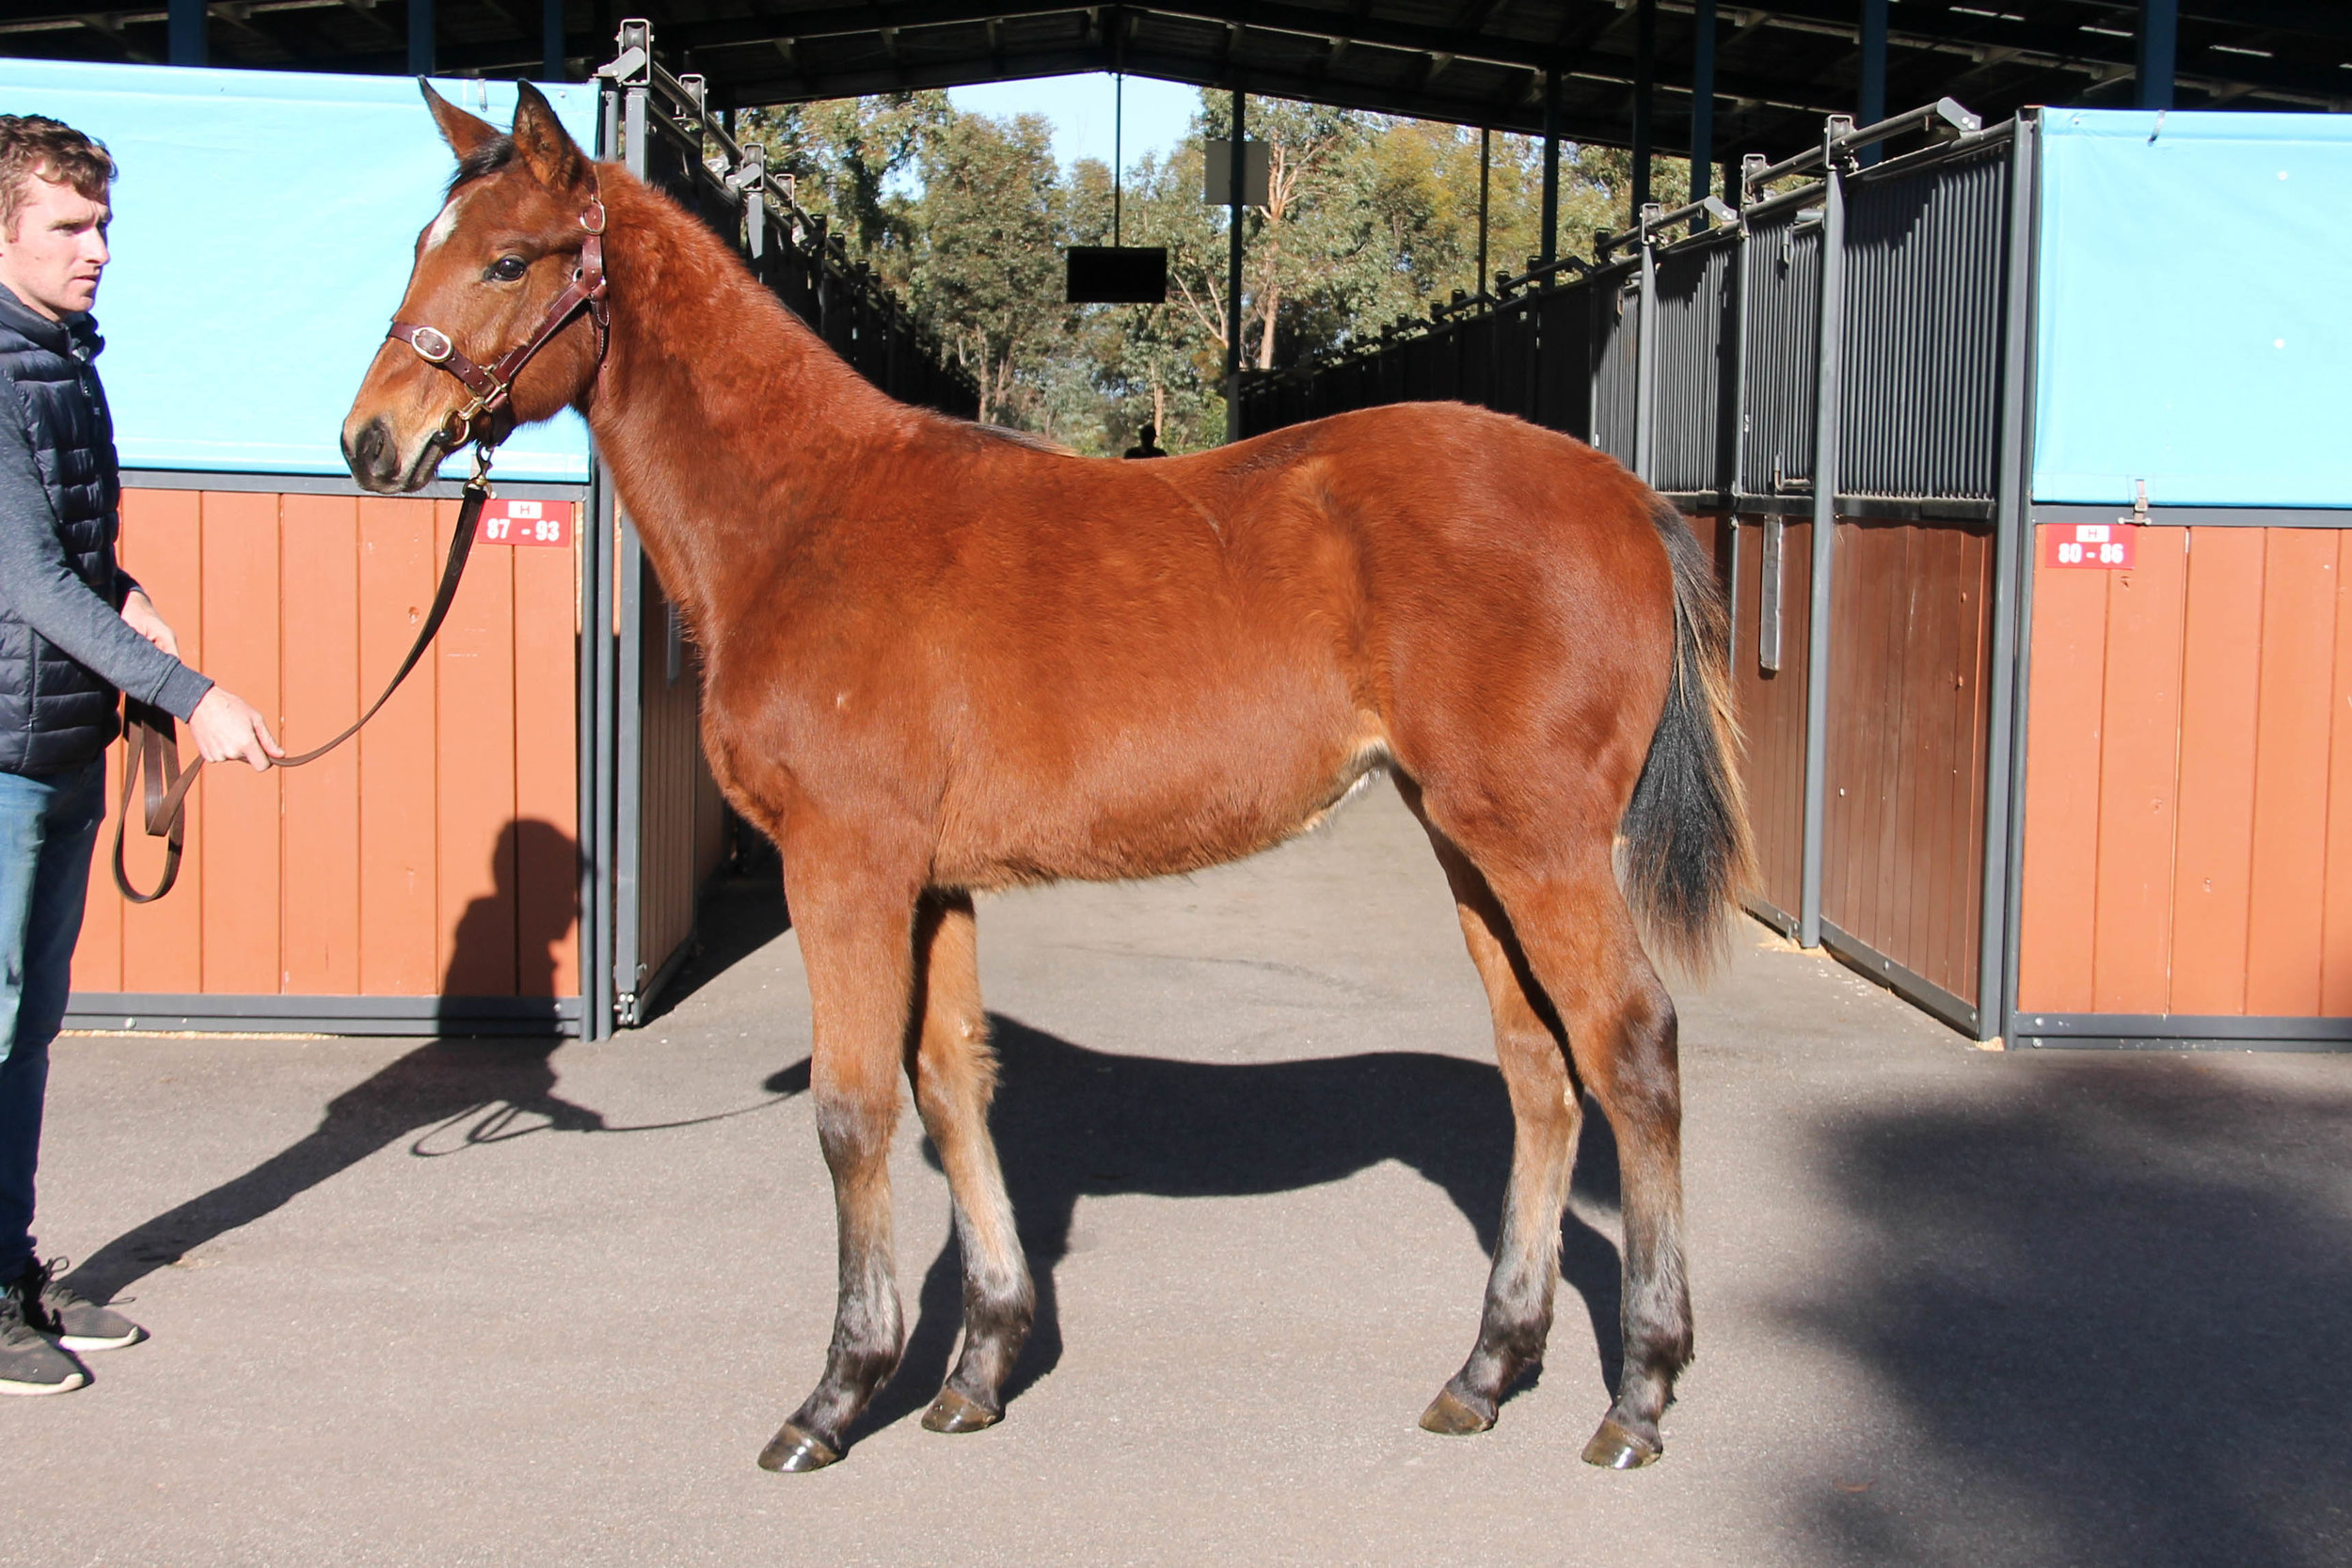 Lot 317 - Star Witness x Neriani 2018 Filly - Sold for $10,000 to JR Thoroughbreds & Bluegrass Thoroughbreds NSW